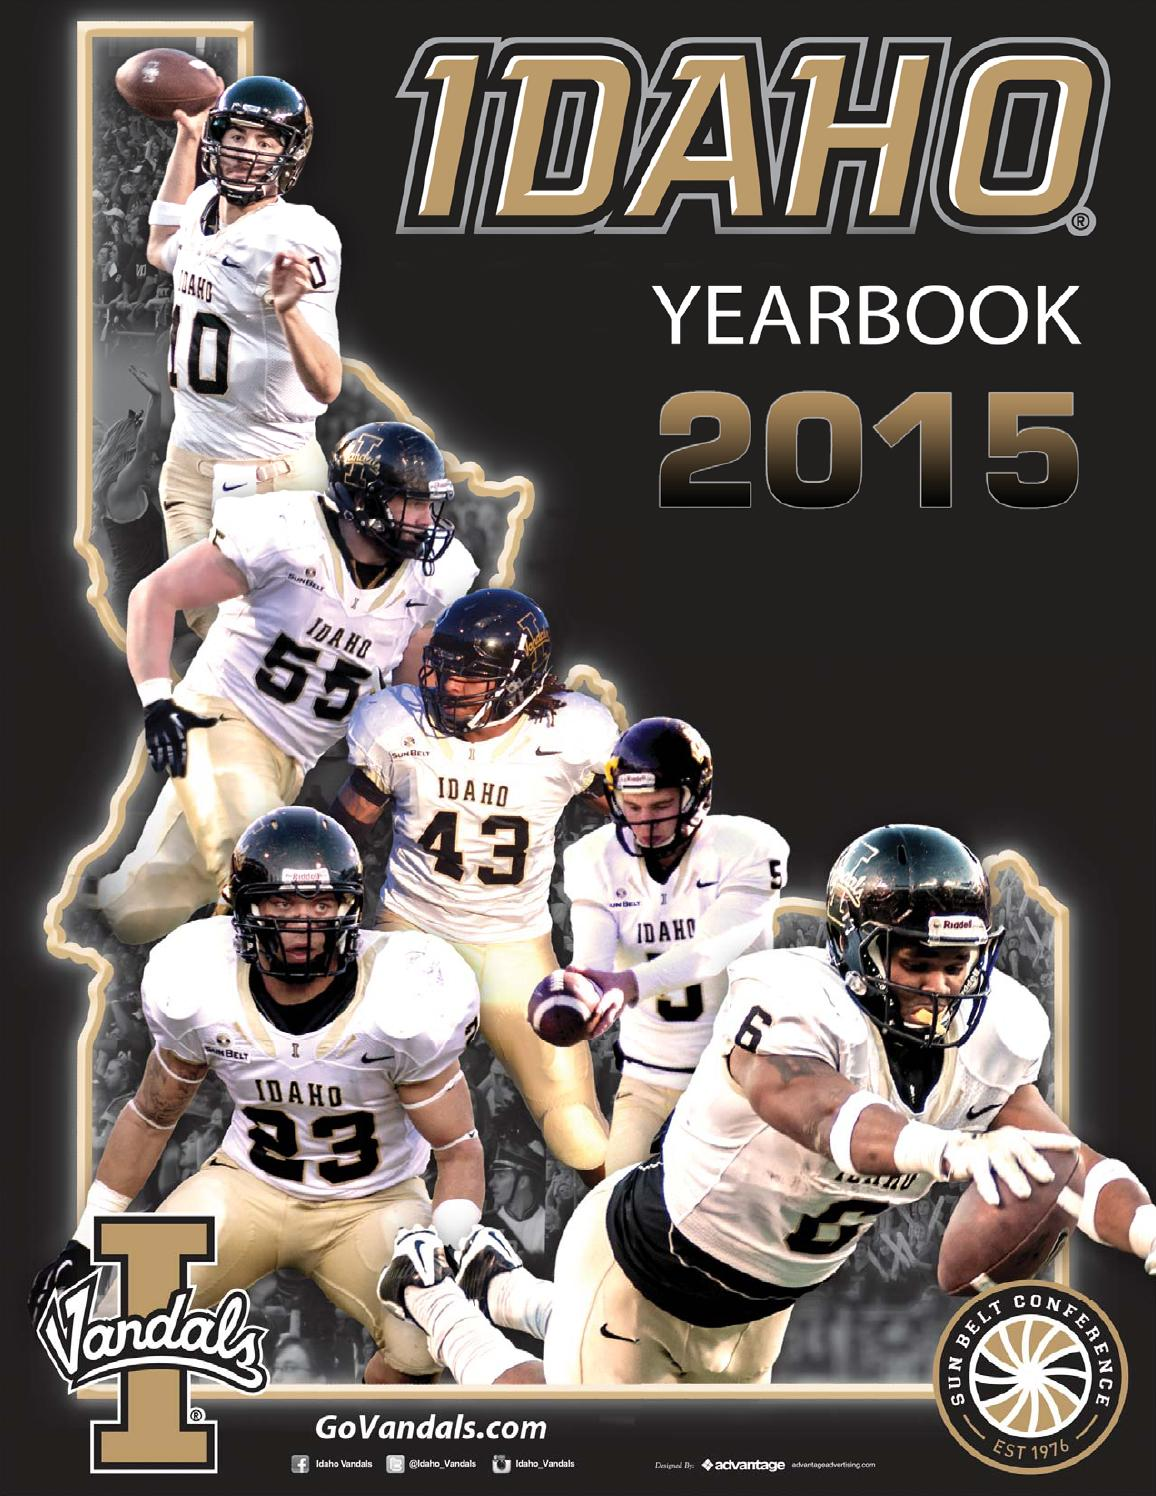 7d3000bd0 2015 University of Idaho Vandal Football Yearbook by Becky Paull - issuu